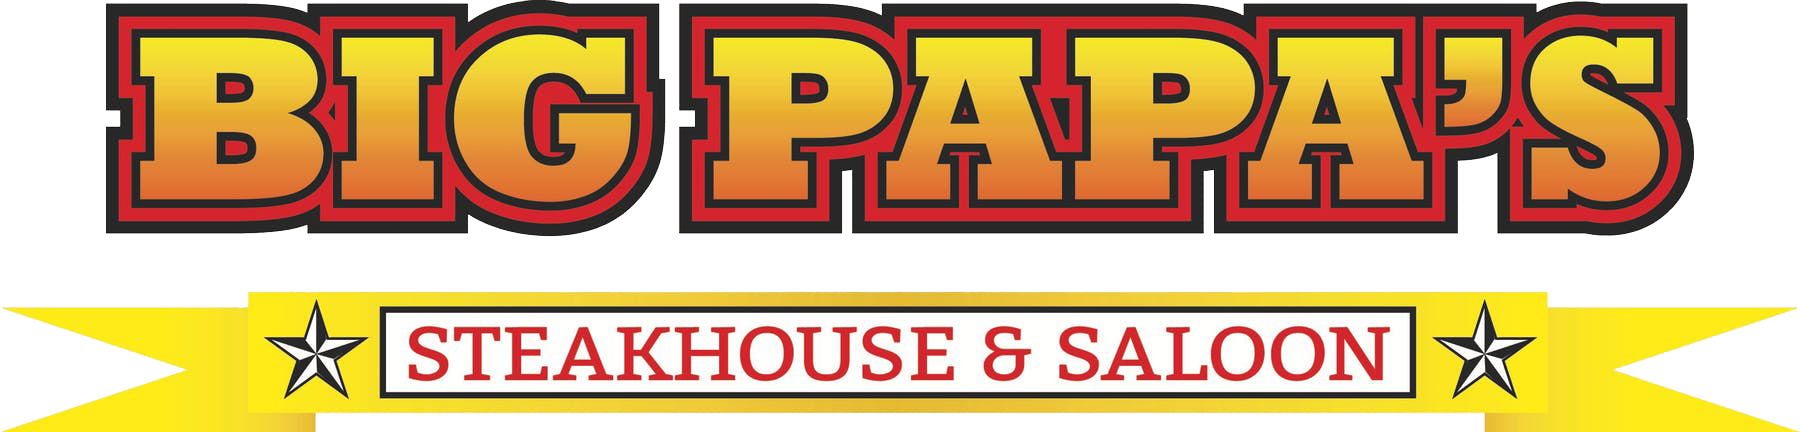 Big Papa's Steakhouse & Saloon Home